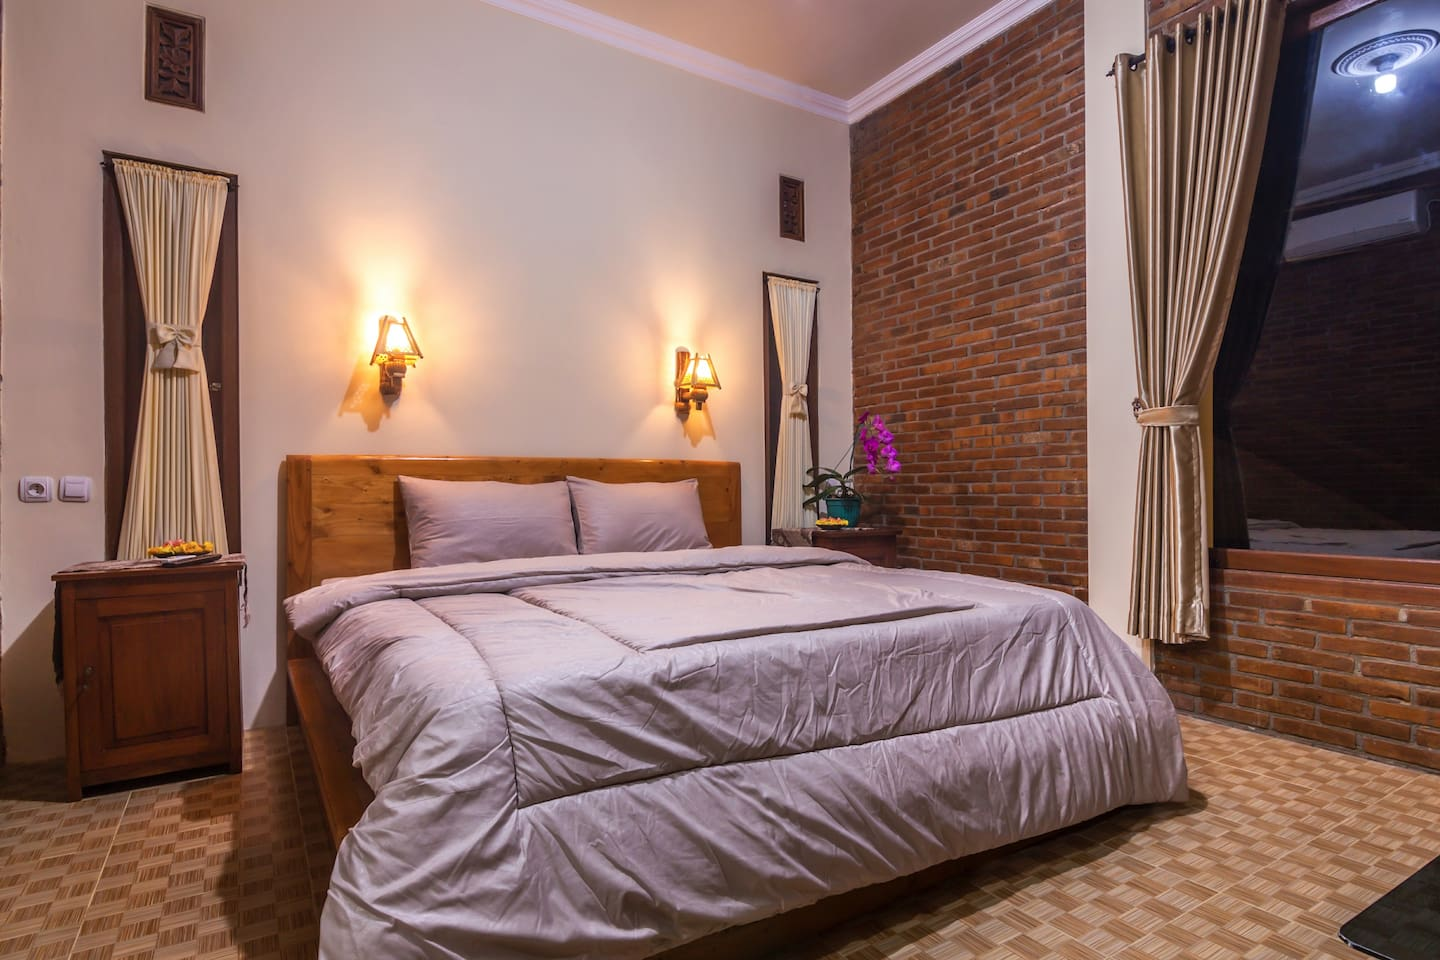 Double room7. 5r. Vcj43t. D f5w4y4trr